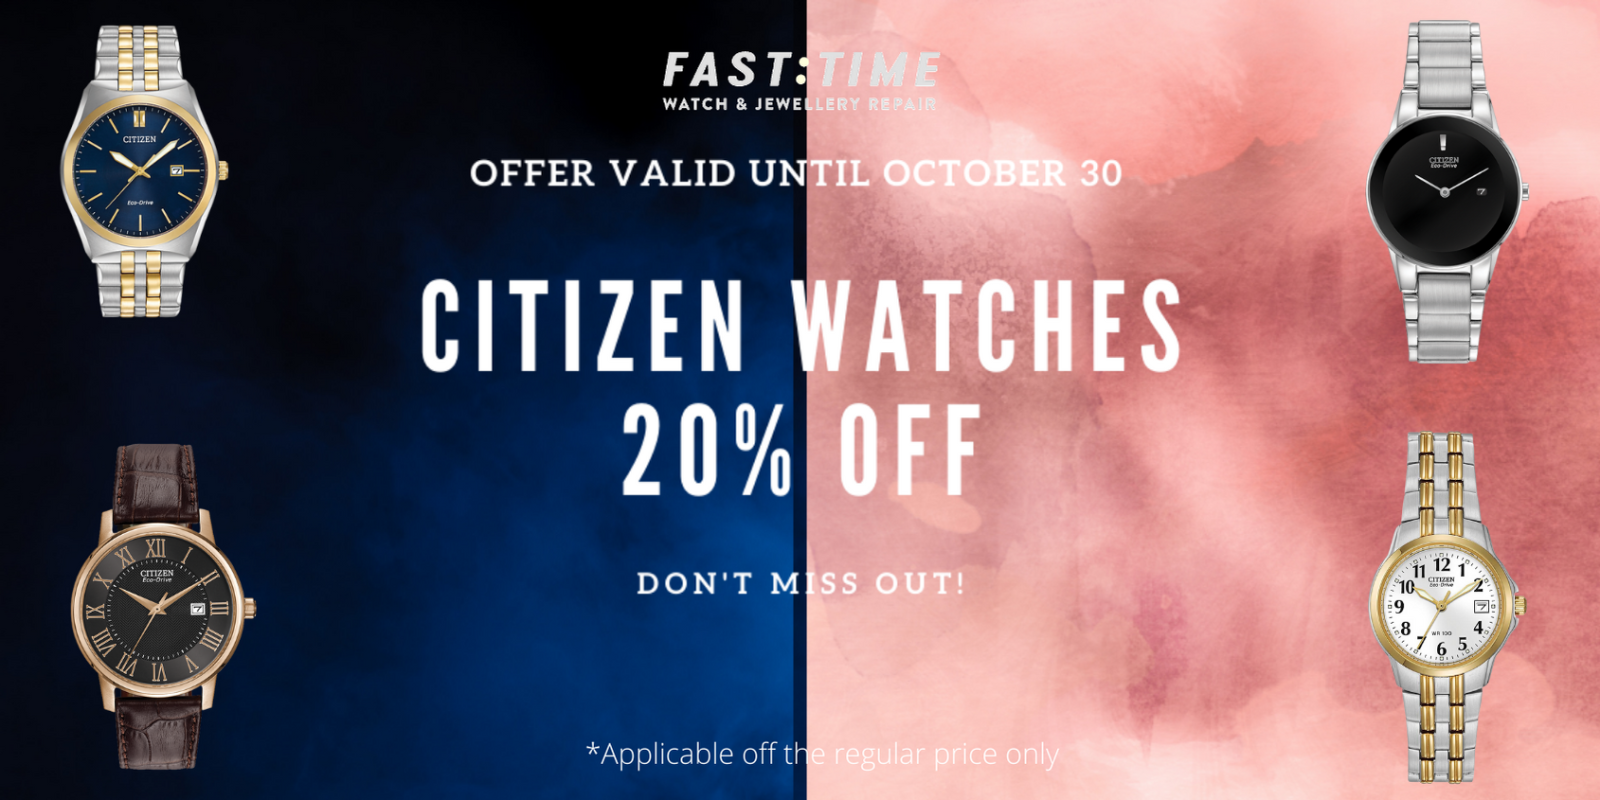 [Image] [offer] 20% OFF CITIZEN WATCHES